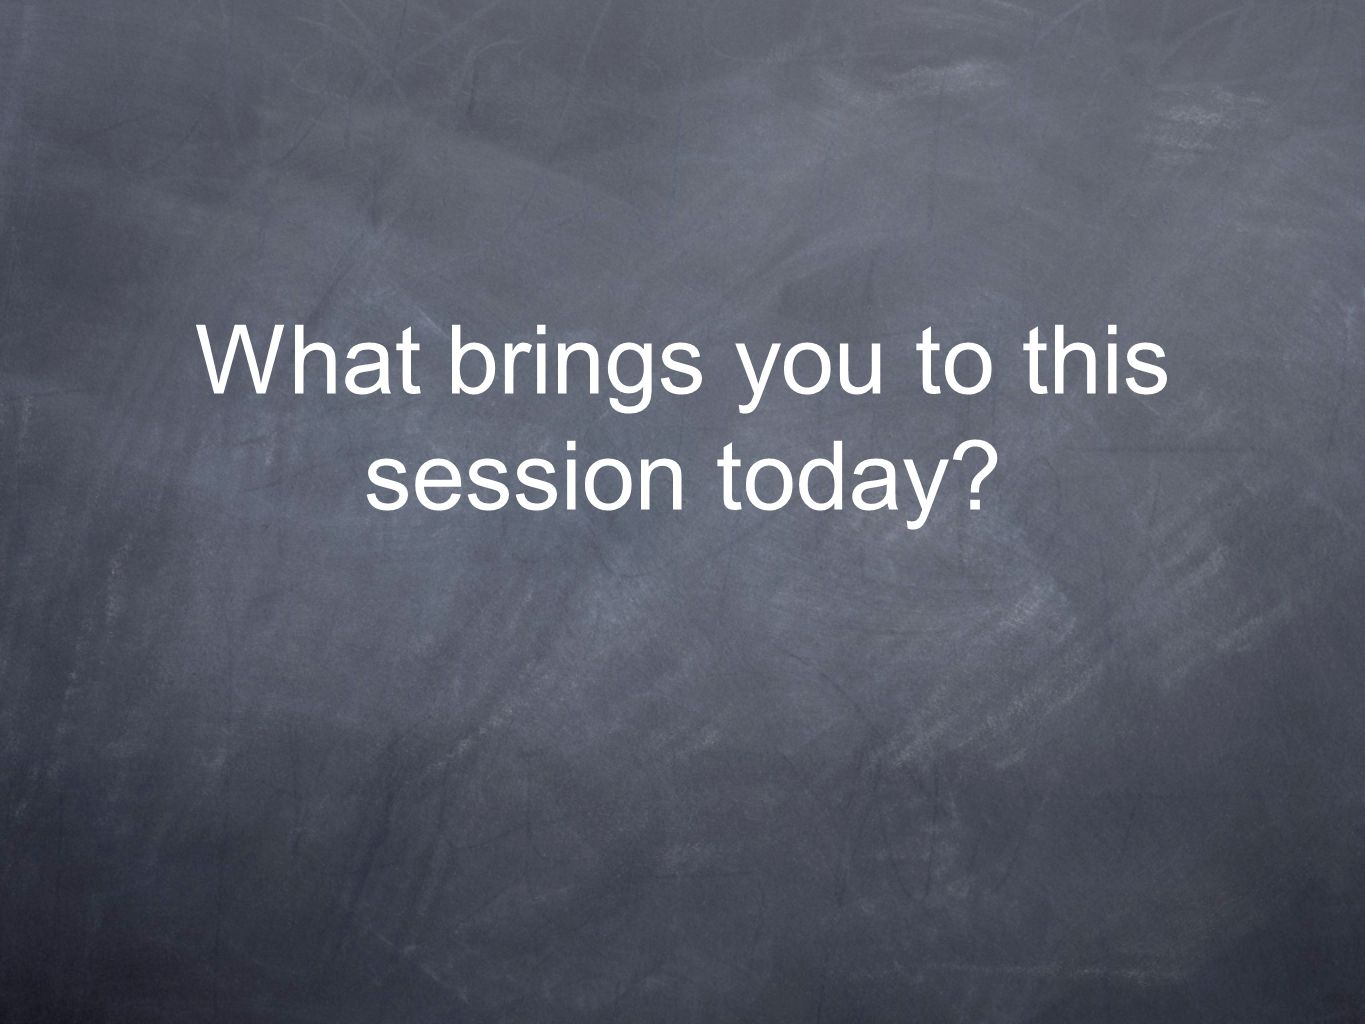 What brings you to this session today?